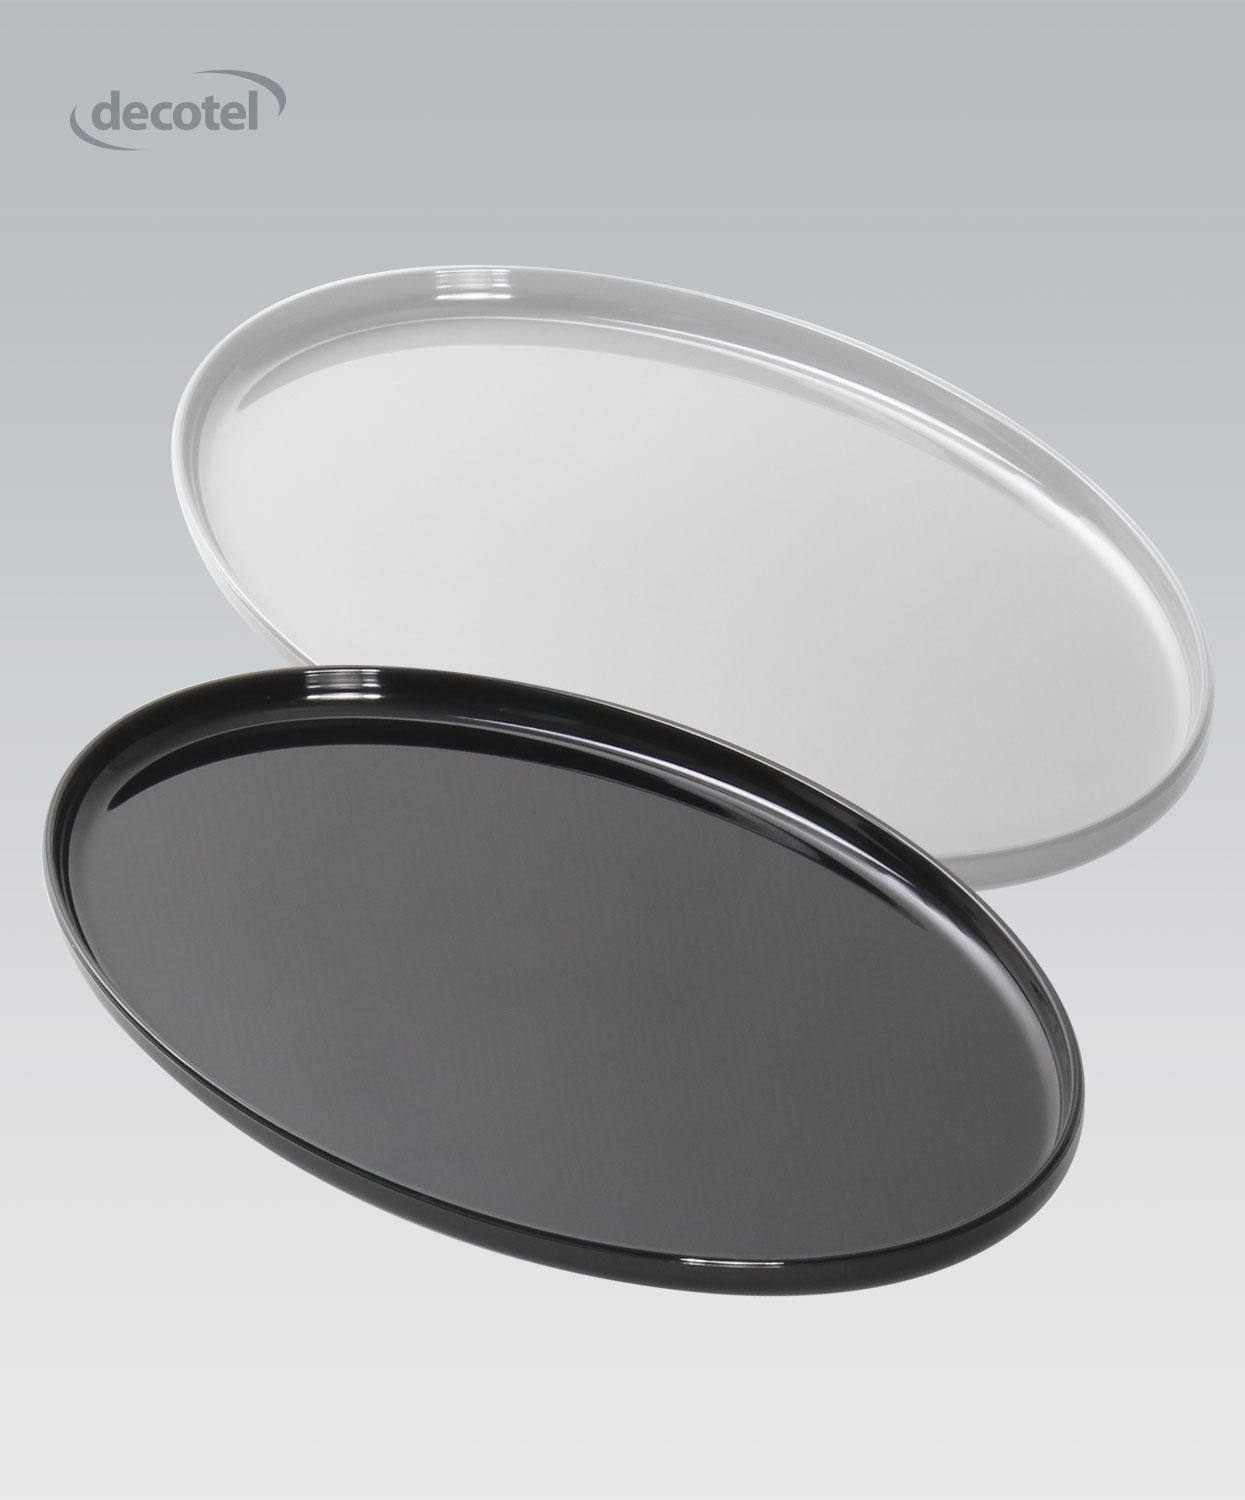 Viscount Small Oval Tray